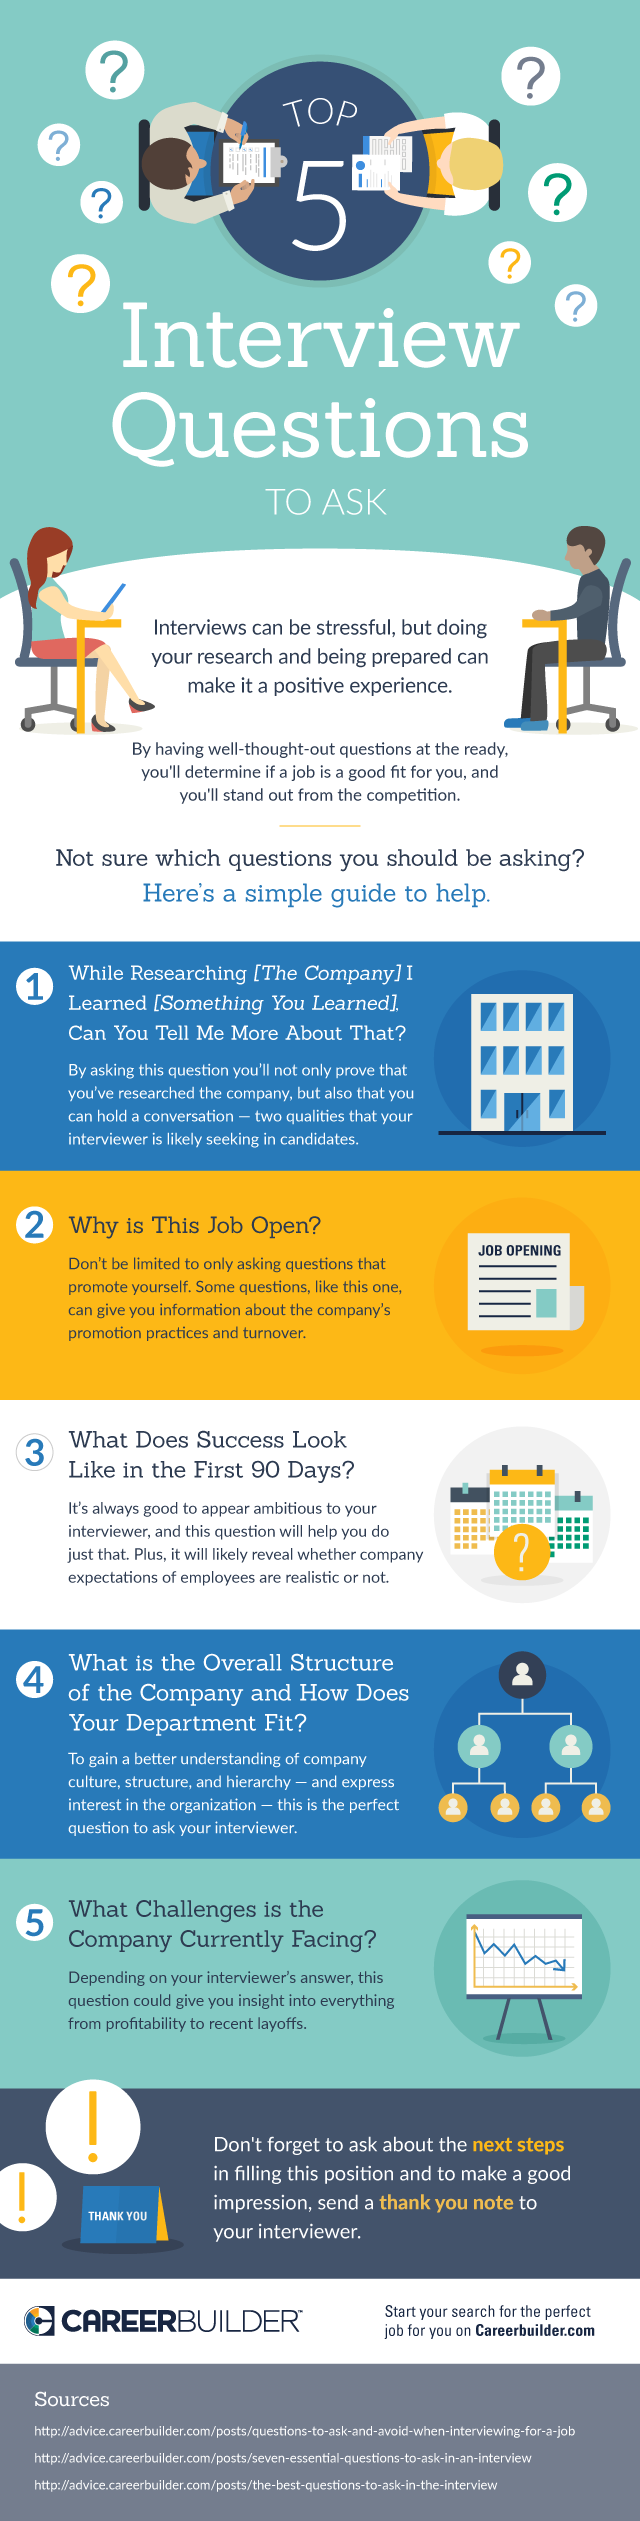 top 5 questions to ask in your next interview careerbuilder not sure which questions you should ask at the end of your next interview here are your top 5